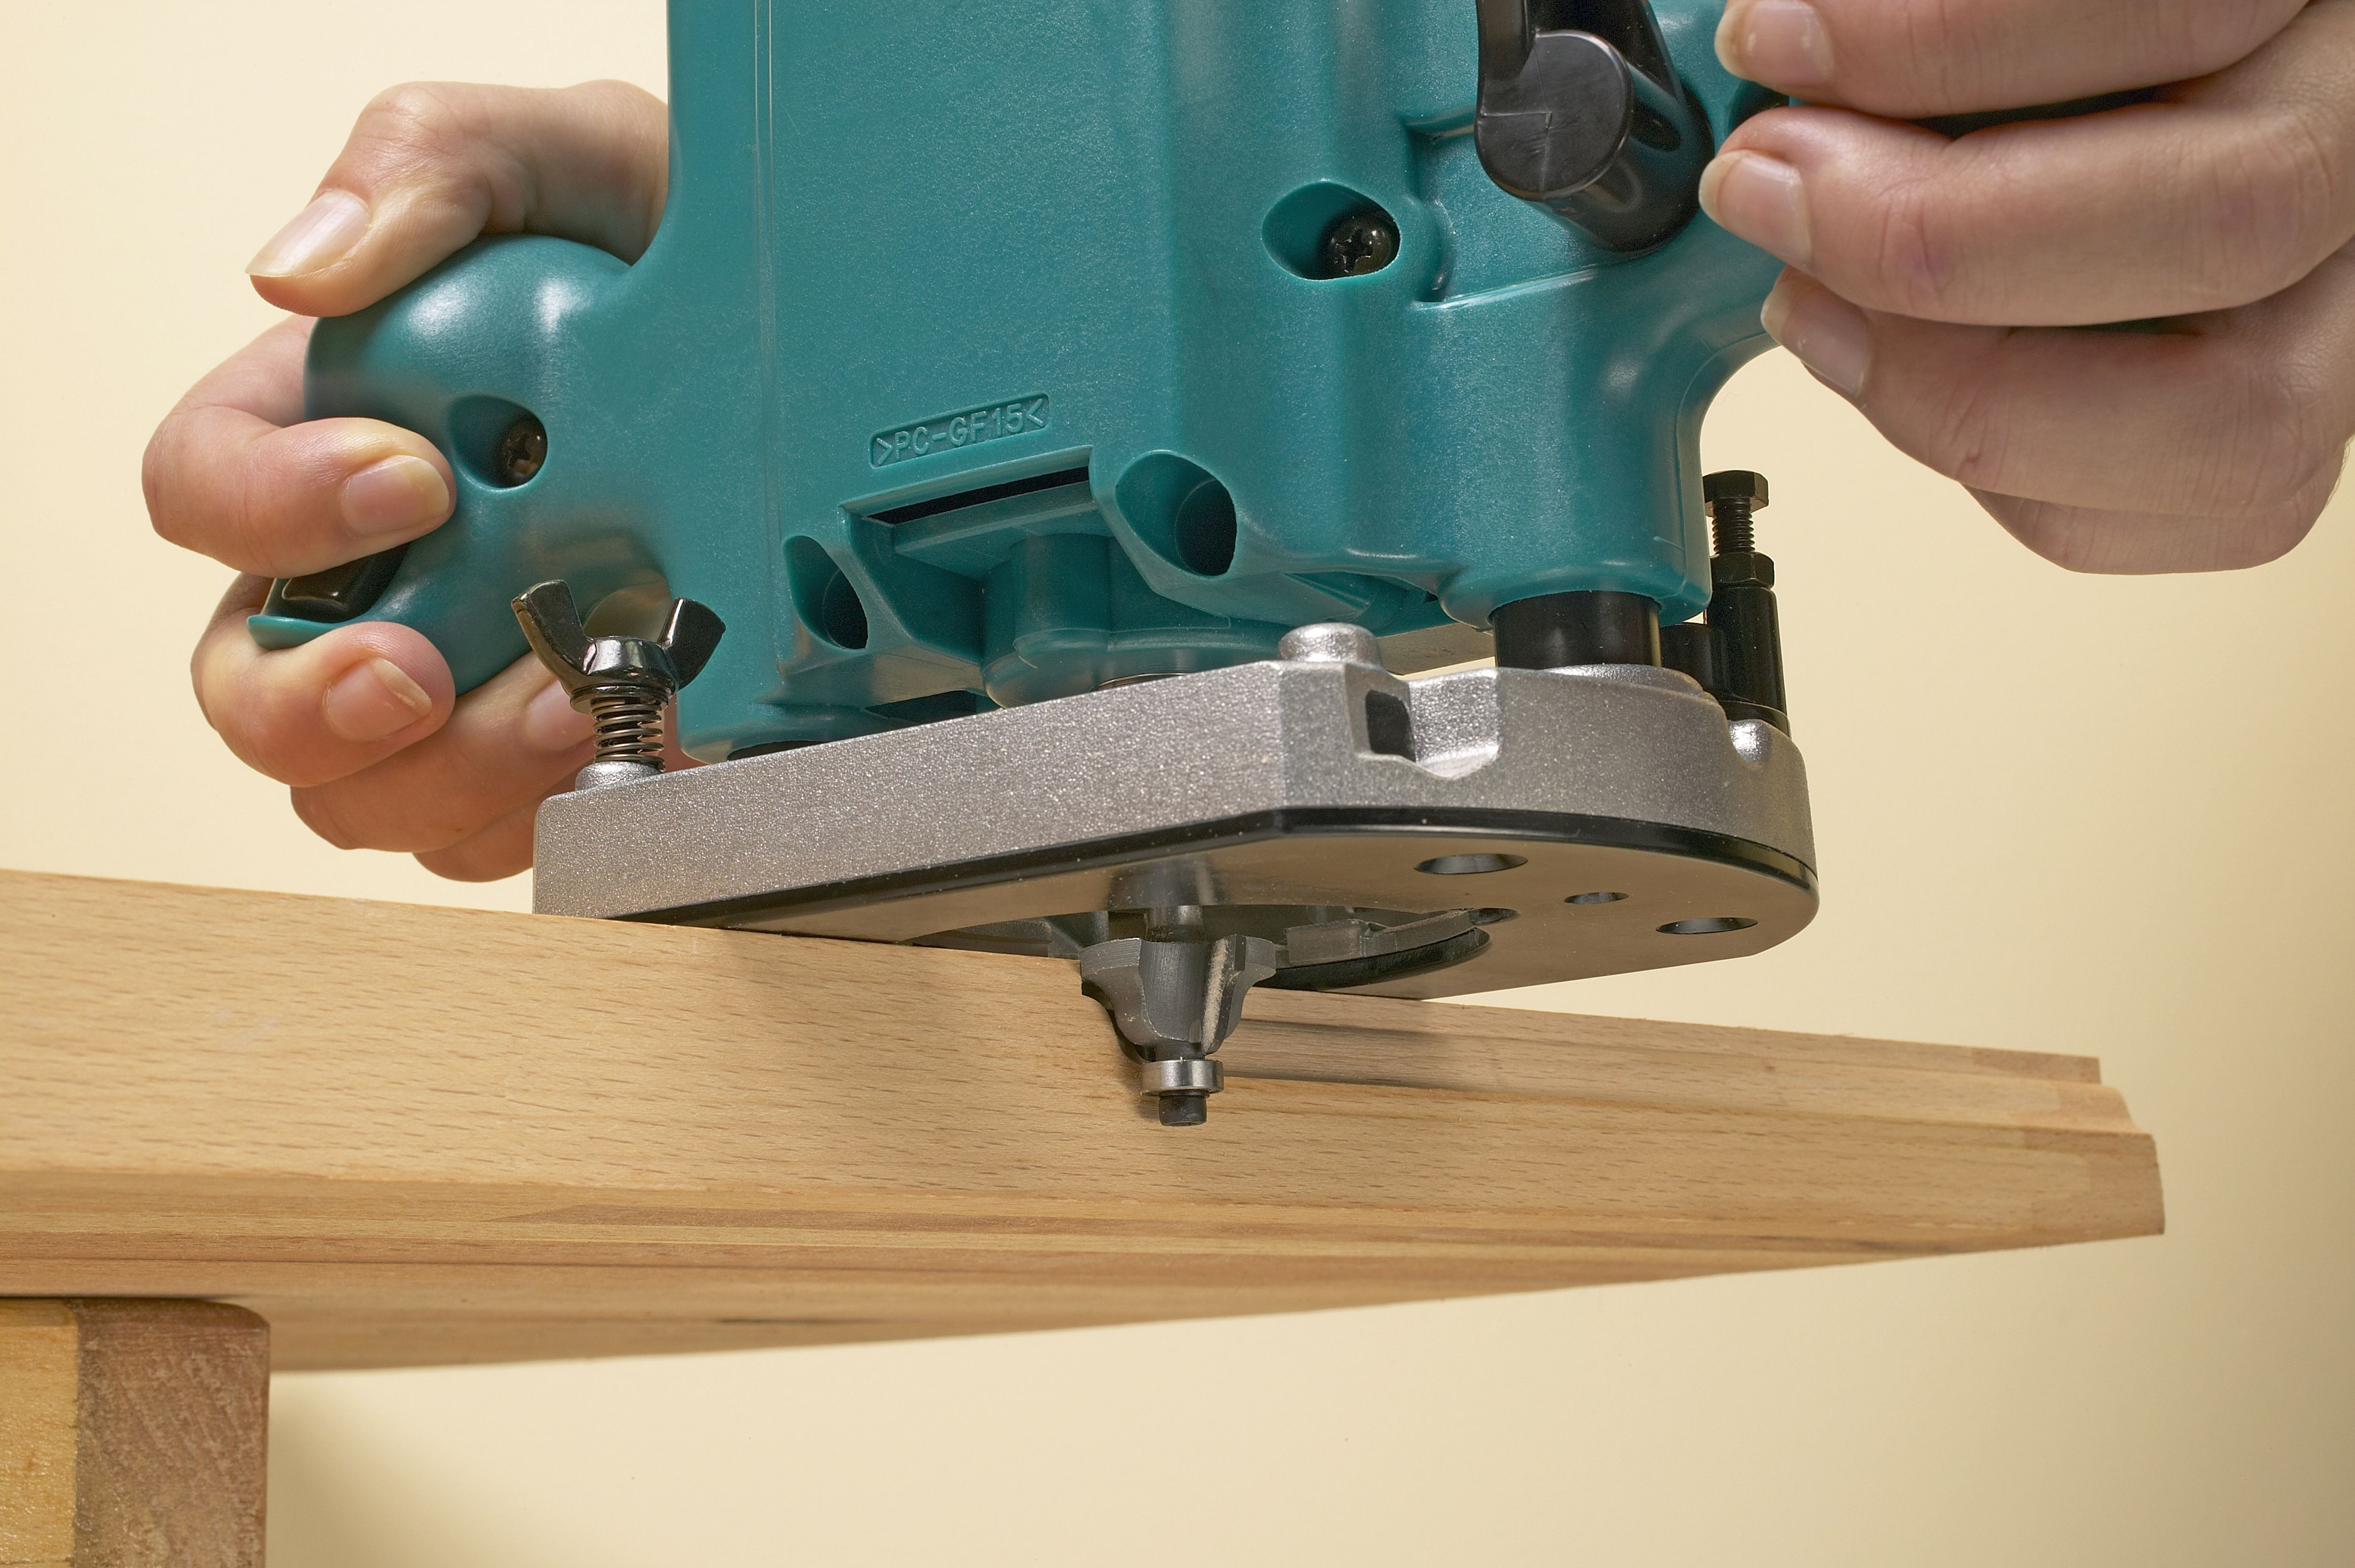 Build a Router Table With These 11 Free Downloadable DIY Plans